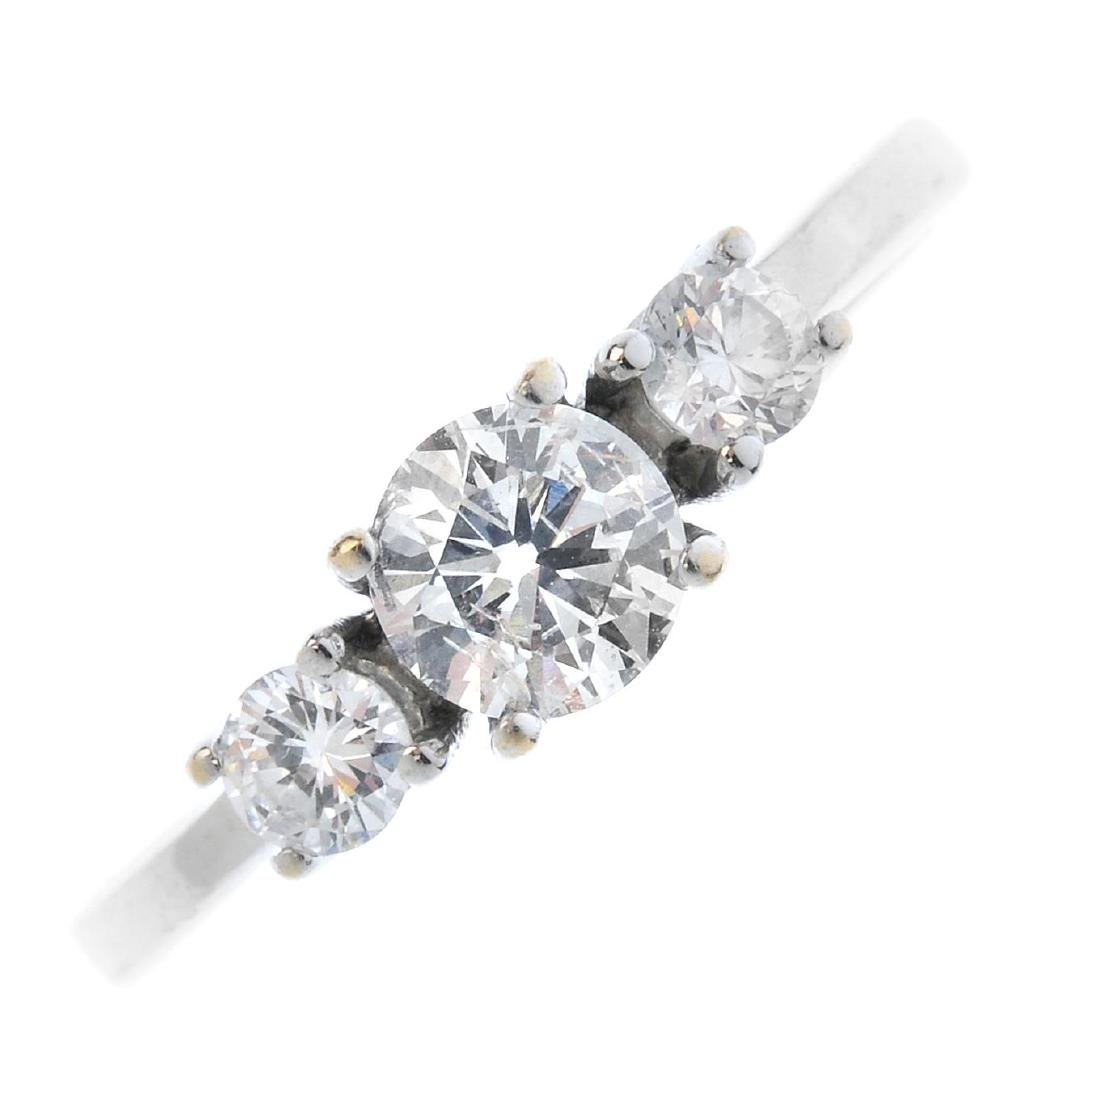 A fracture-filled diamond three-stone ring. The